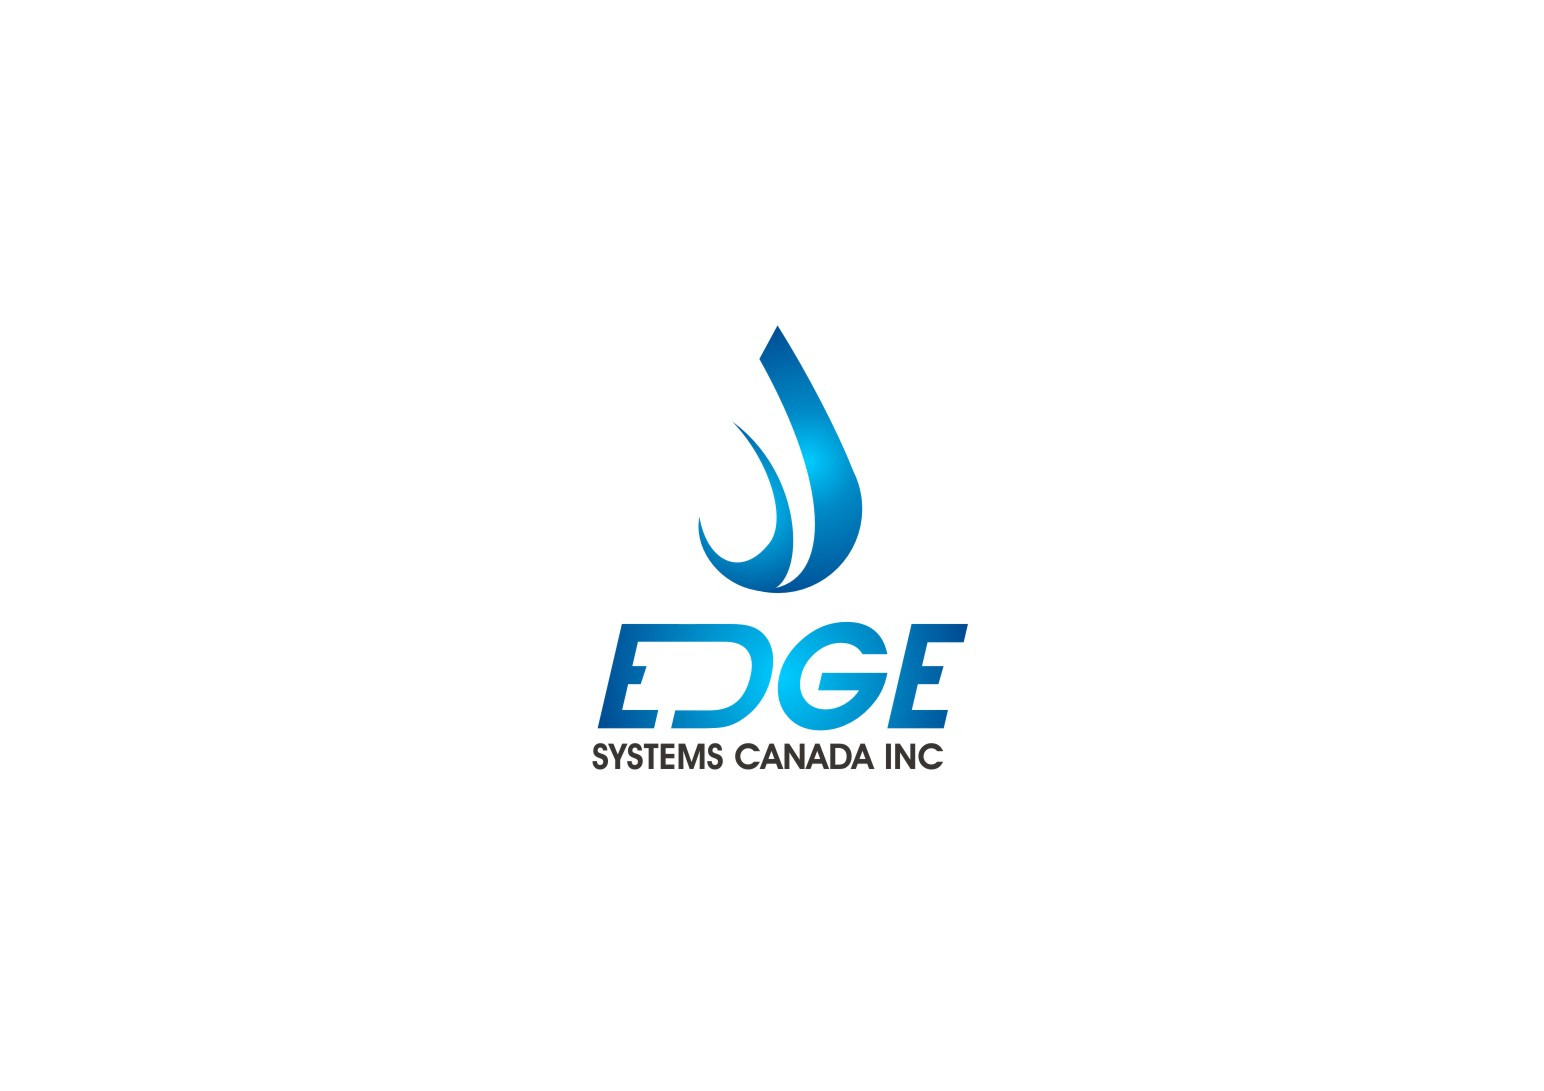 Logo Design by yanxsant - Entry No. 24 in the Logo Design Contest New Logo Design for Edge Systems Canada Inc.